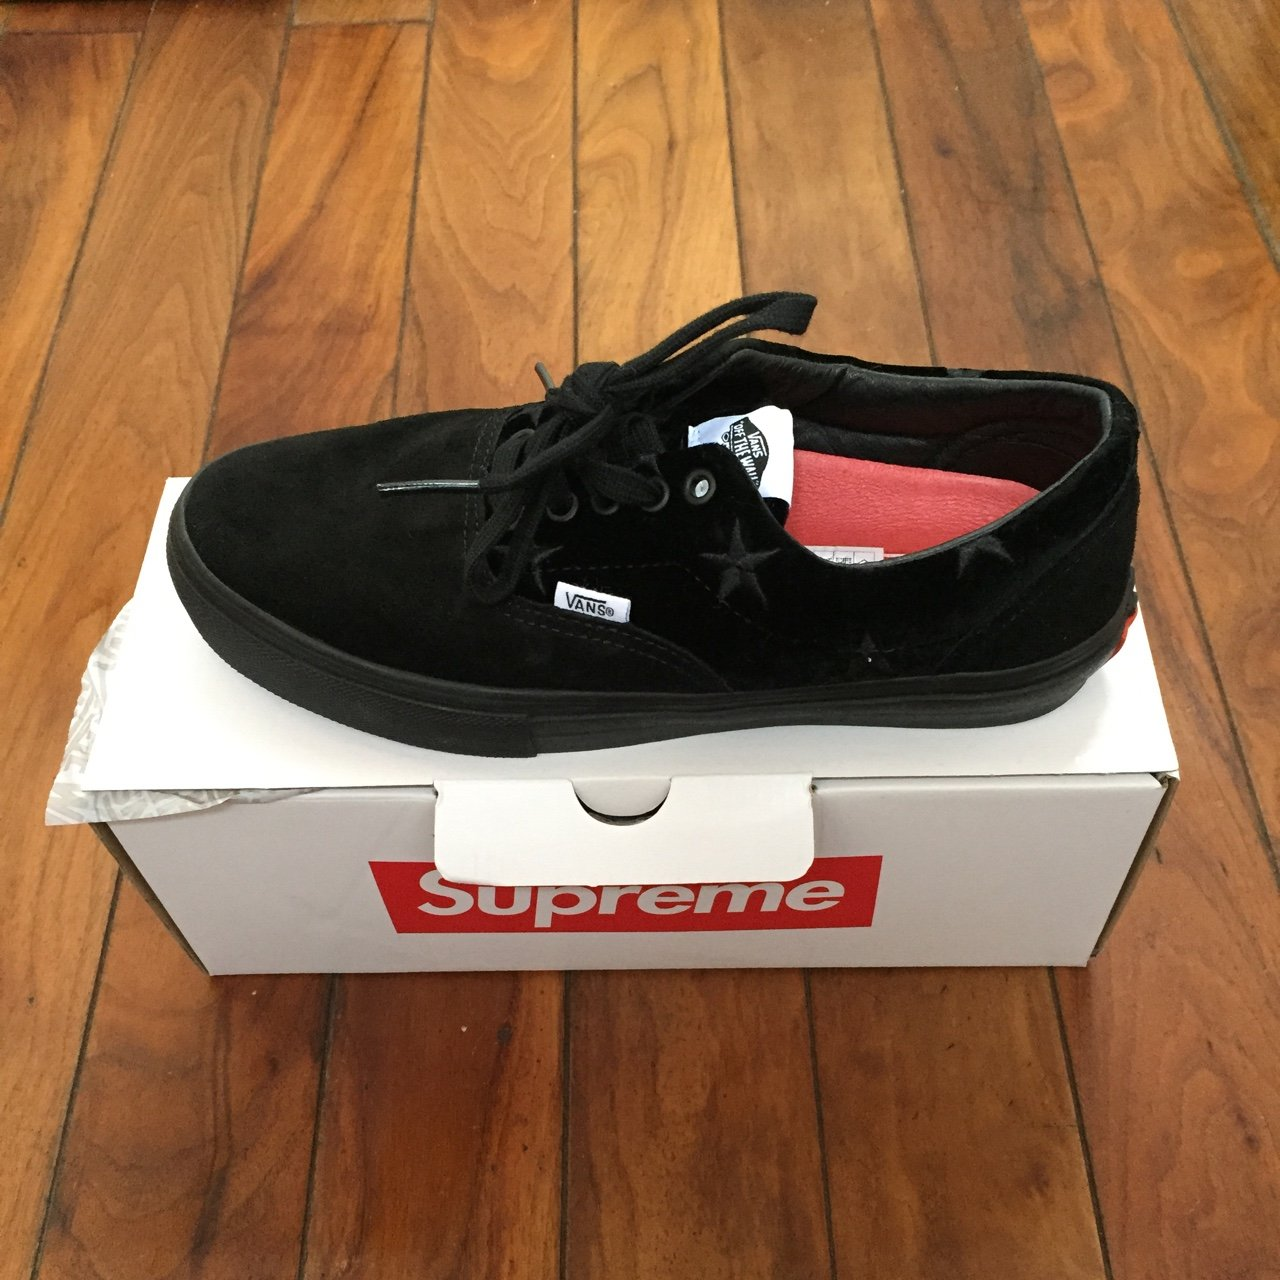 4aee3080a56 Supreme x vans era velvet pack. These were a sell out in on - Depop